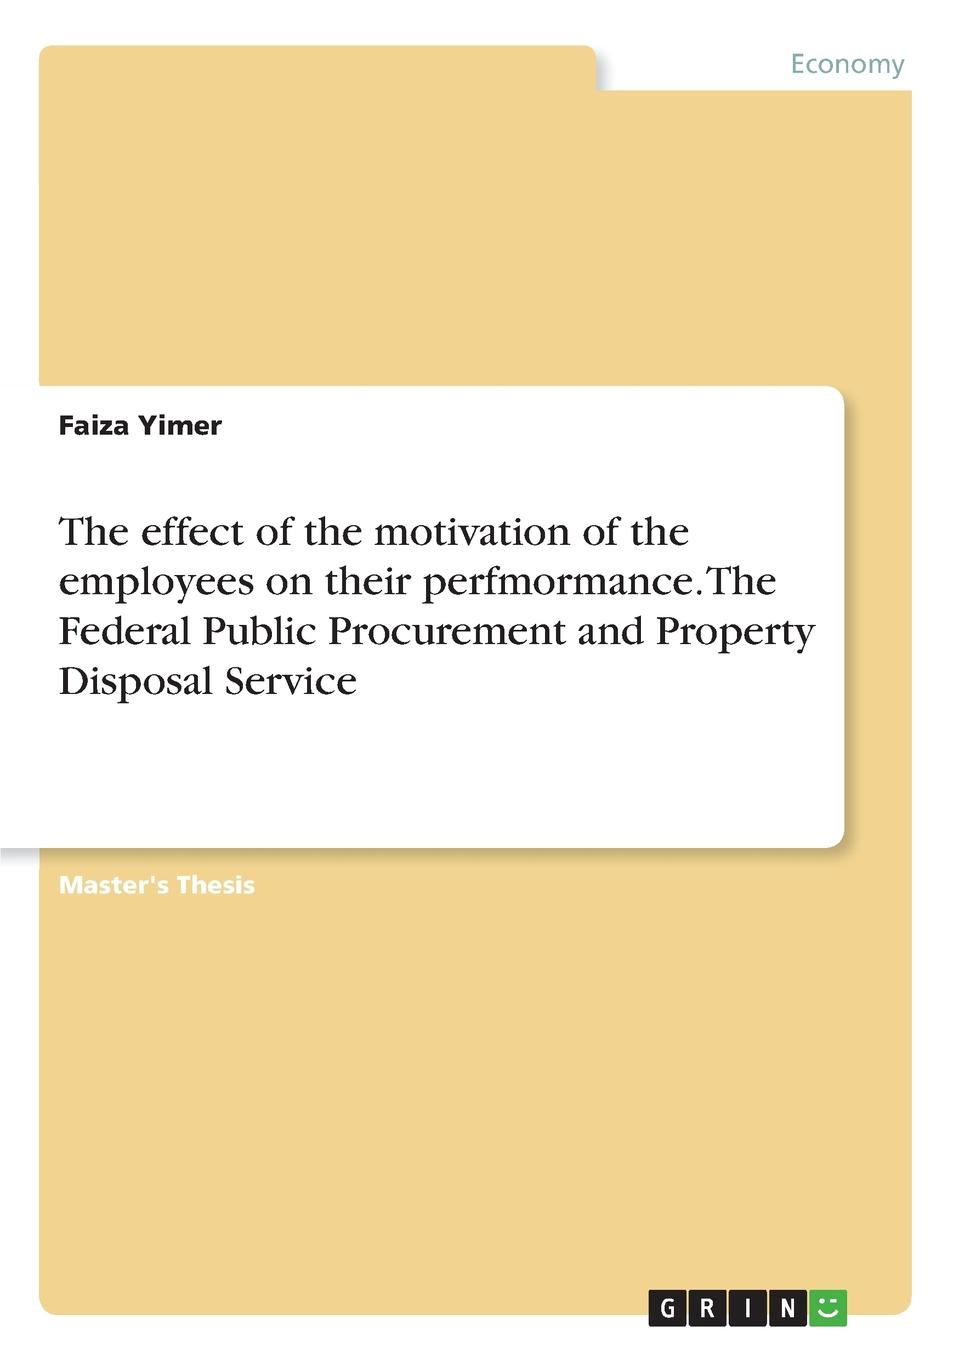 Faiza Yimer The effect of the motivation of the employees on their perfmormance. The Federal Public Procurement and Property Disposal Service muhammad naeem intrinsic versus extrinsic motivation and the effects of those types on employees